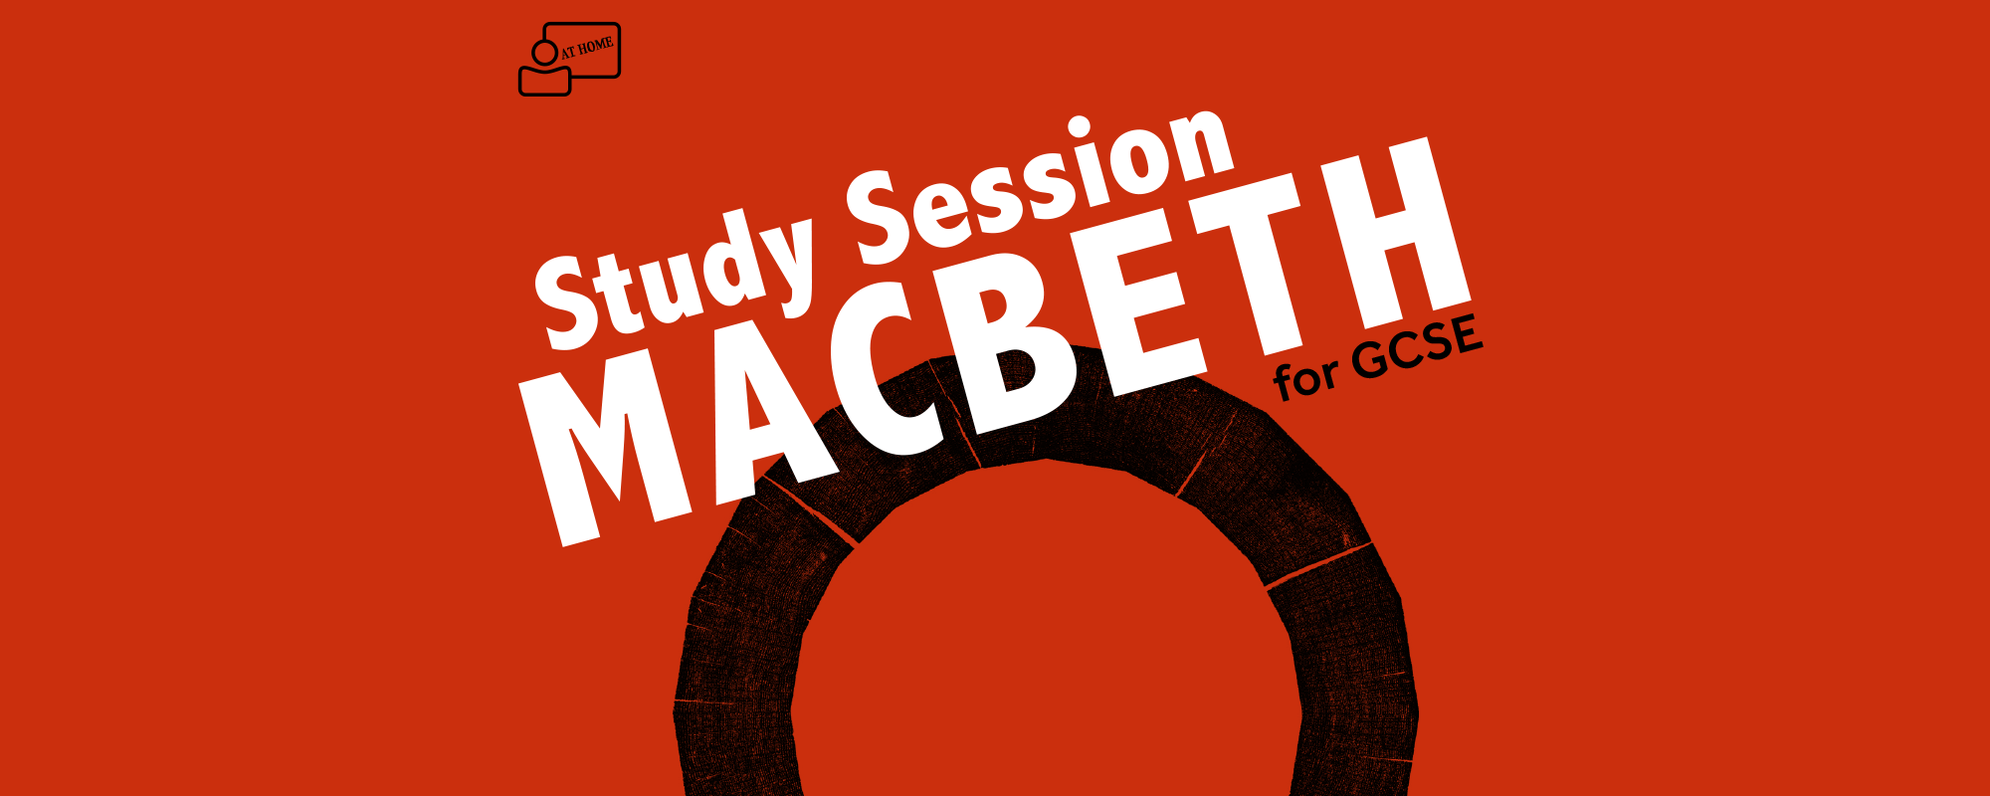 Study Session Macbeth for GCSE at Home